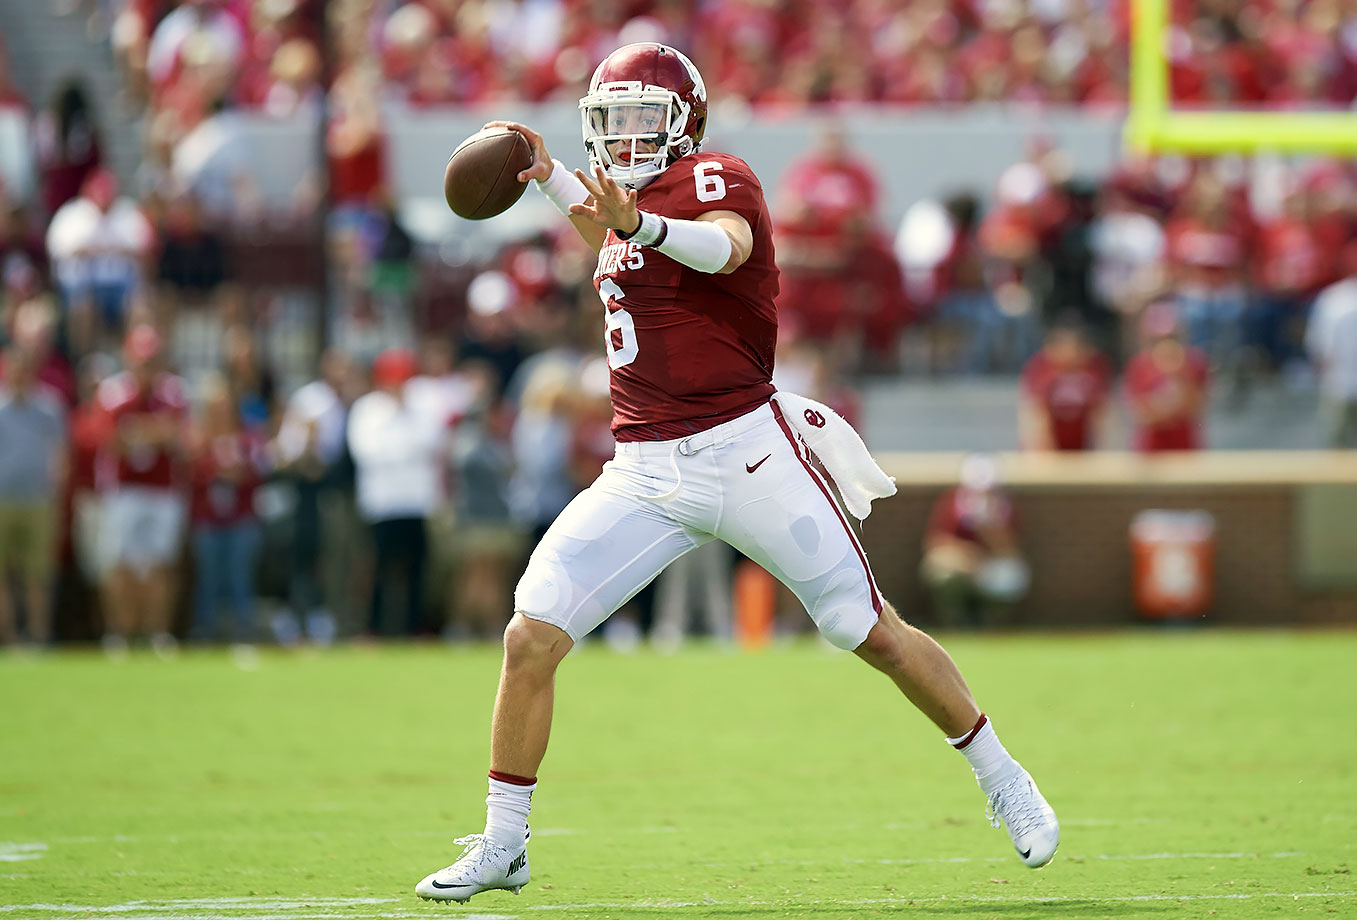 Oklahoma's quarterback took college football by storm last year, leading the Sooners to a playoff berth behind 3,700 yards passing and 43 total touchdowns. The former walk-on made a late push for the Heisman Trophy in 2015 and is a front-runner heading into 2016.